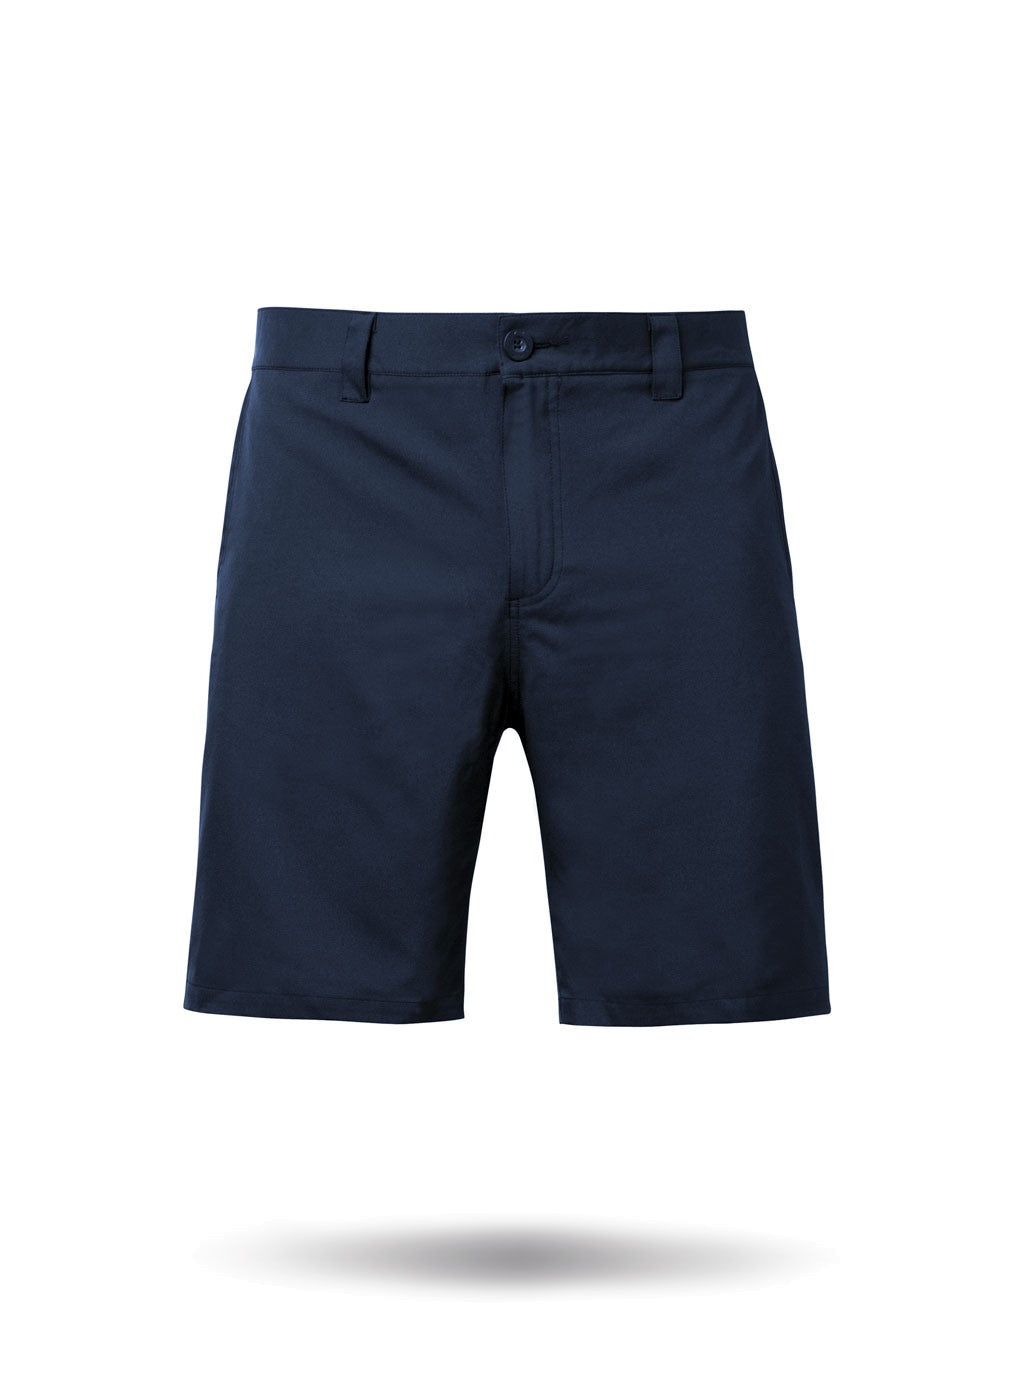 Zhik Mens Marine Shorts